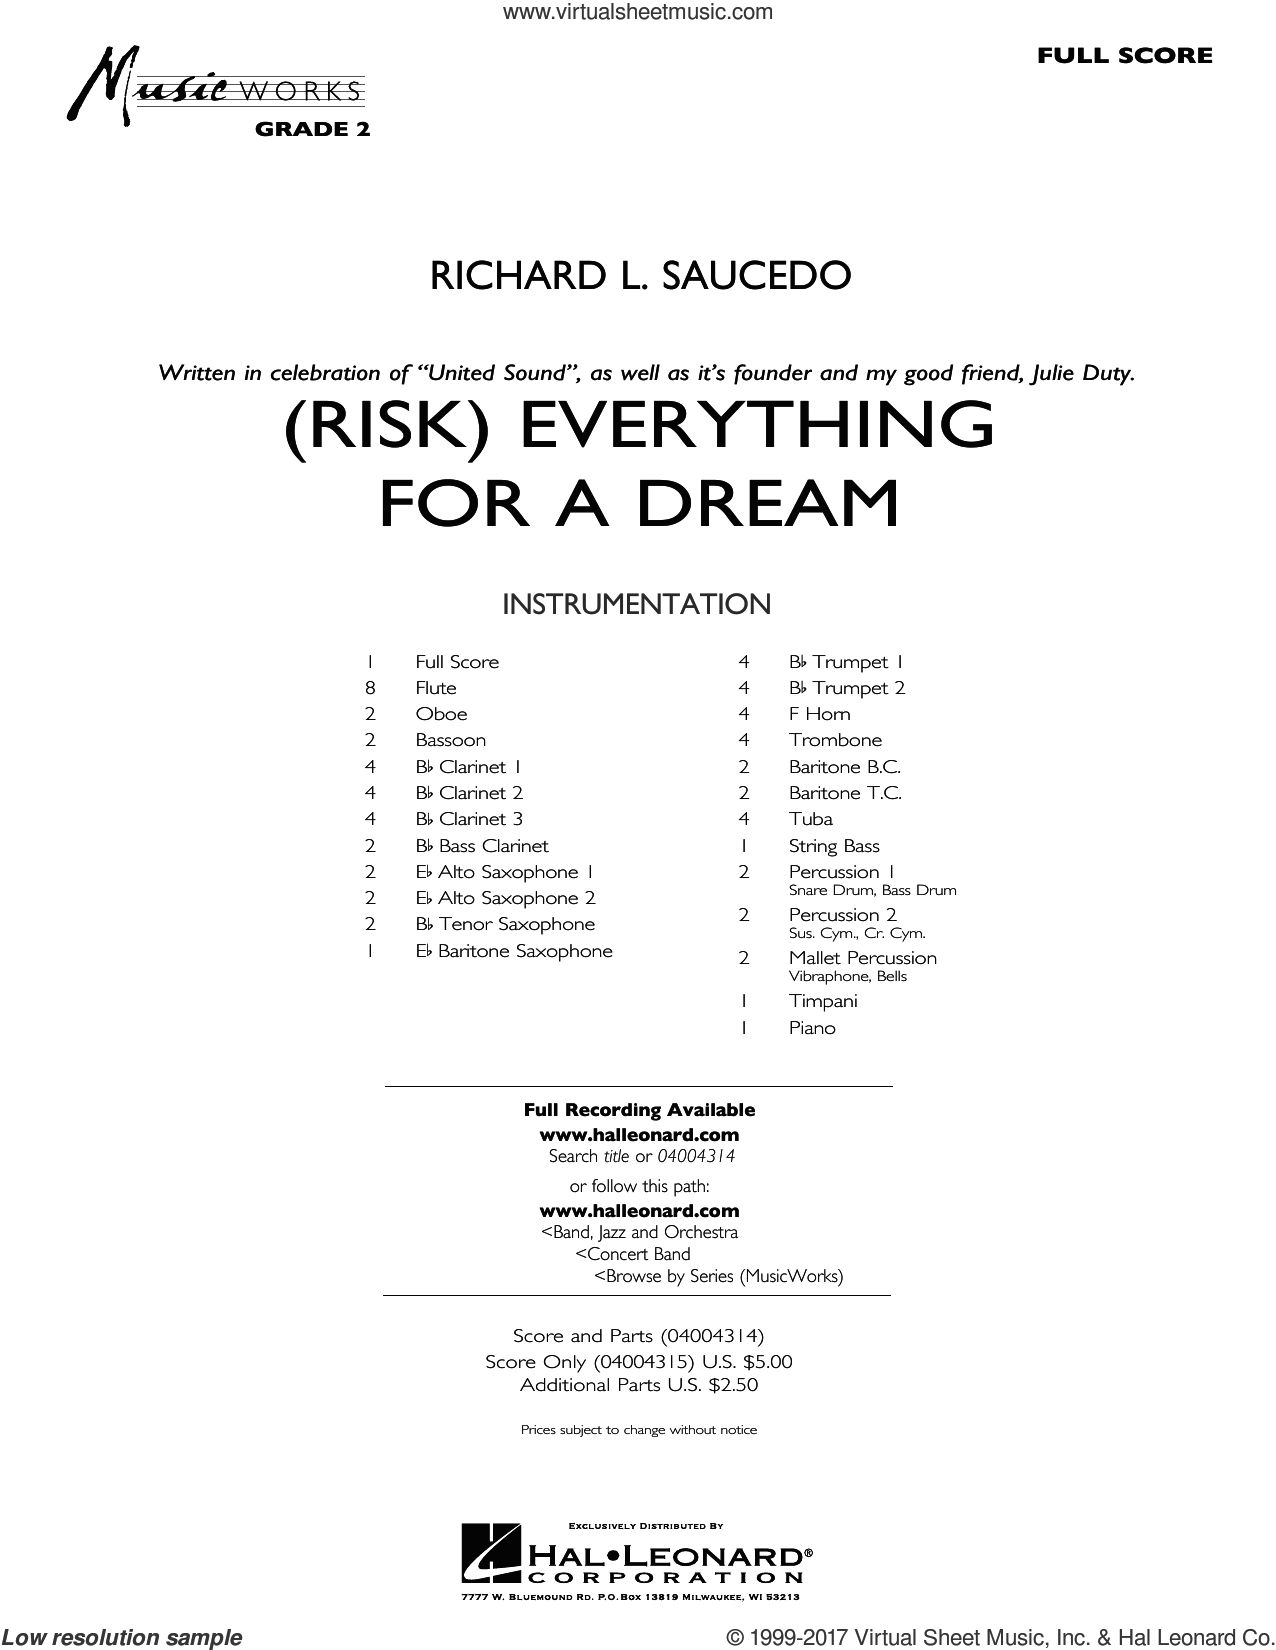 (Risk) Everything for a Dream (COMPLETE) sheet music for concert band by Richard L. Saucedo, intermediate skill level